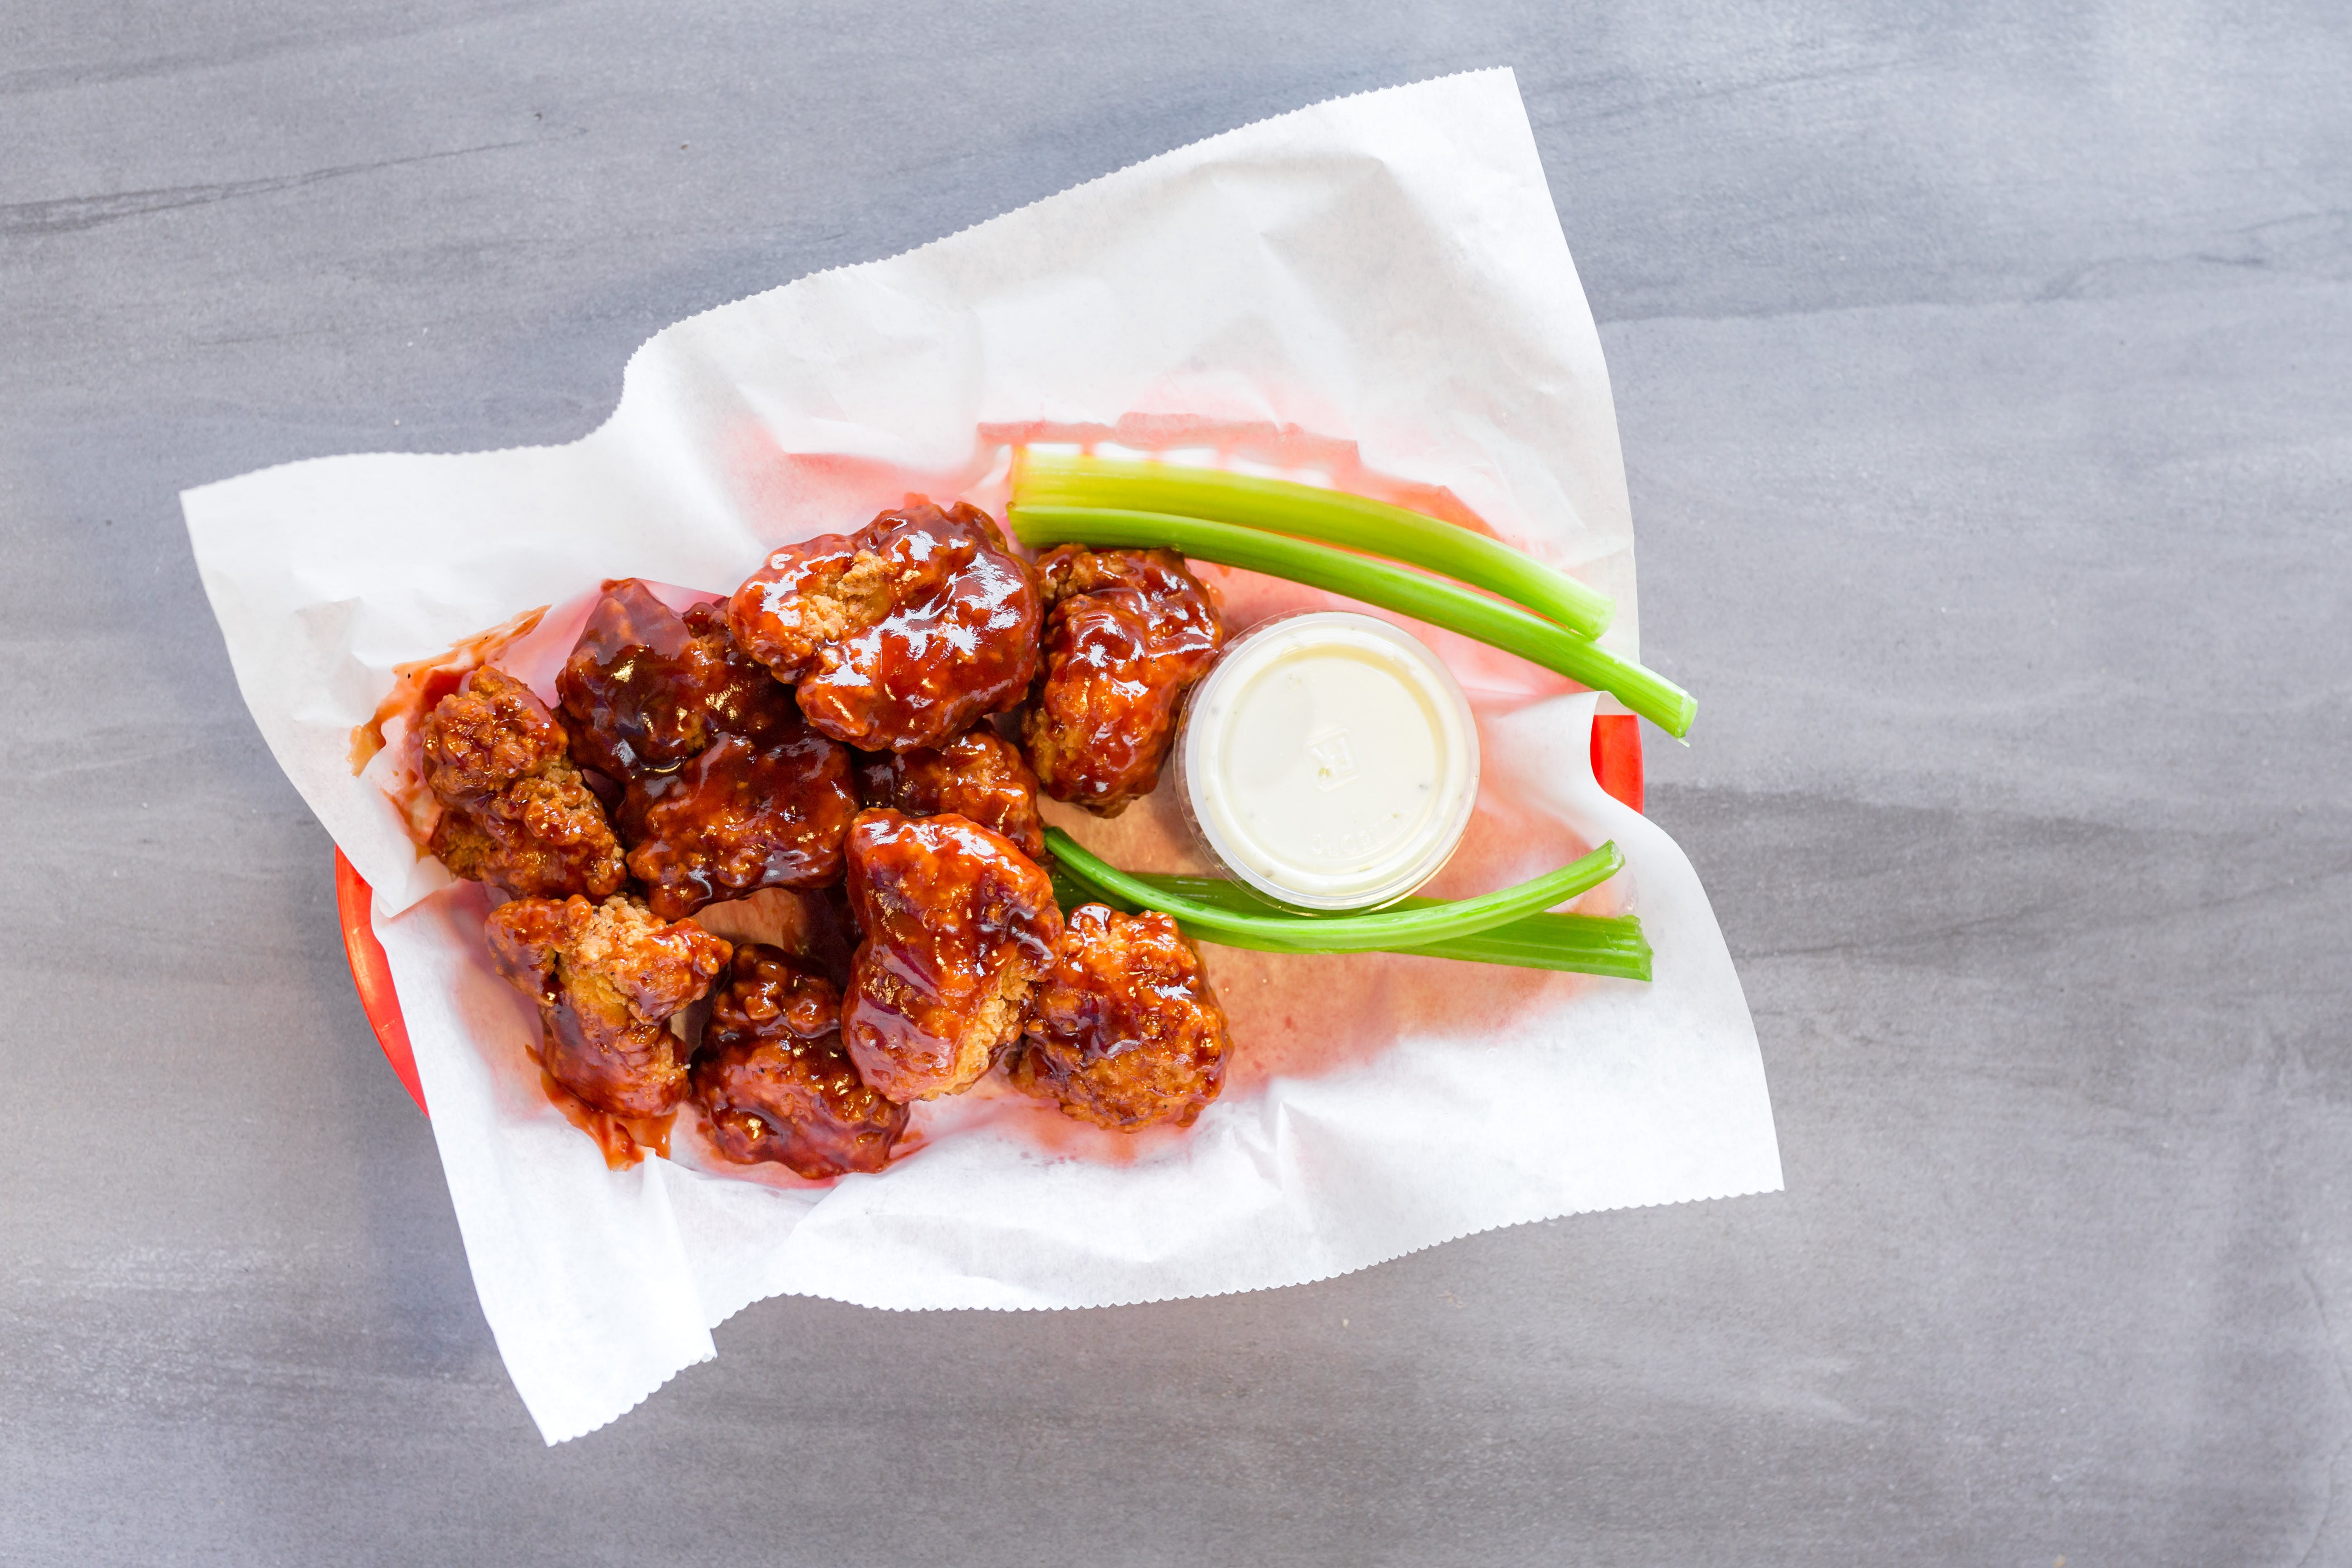 Boneless Wings from Chubby's Cheesesteaks - Miller Park Way in Milwaukee, WI